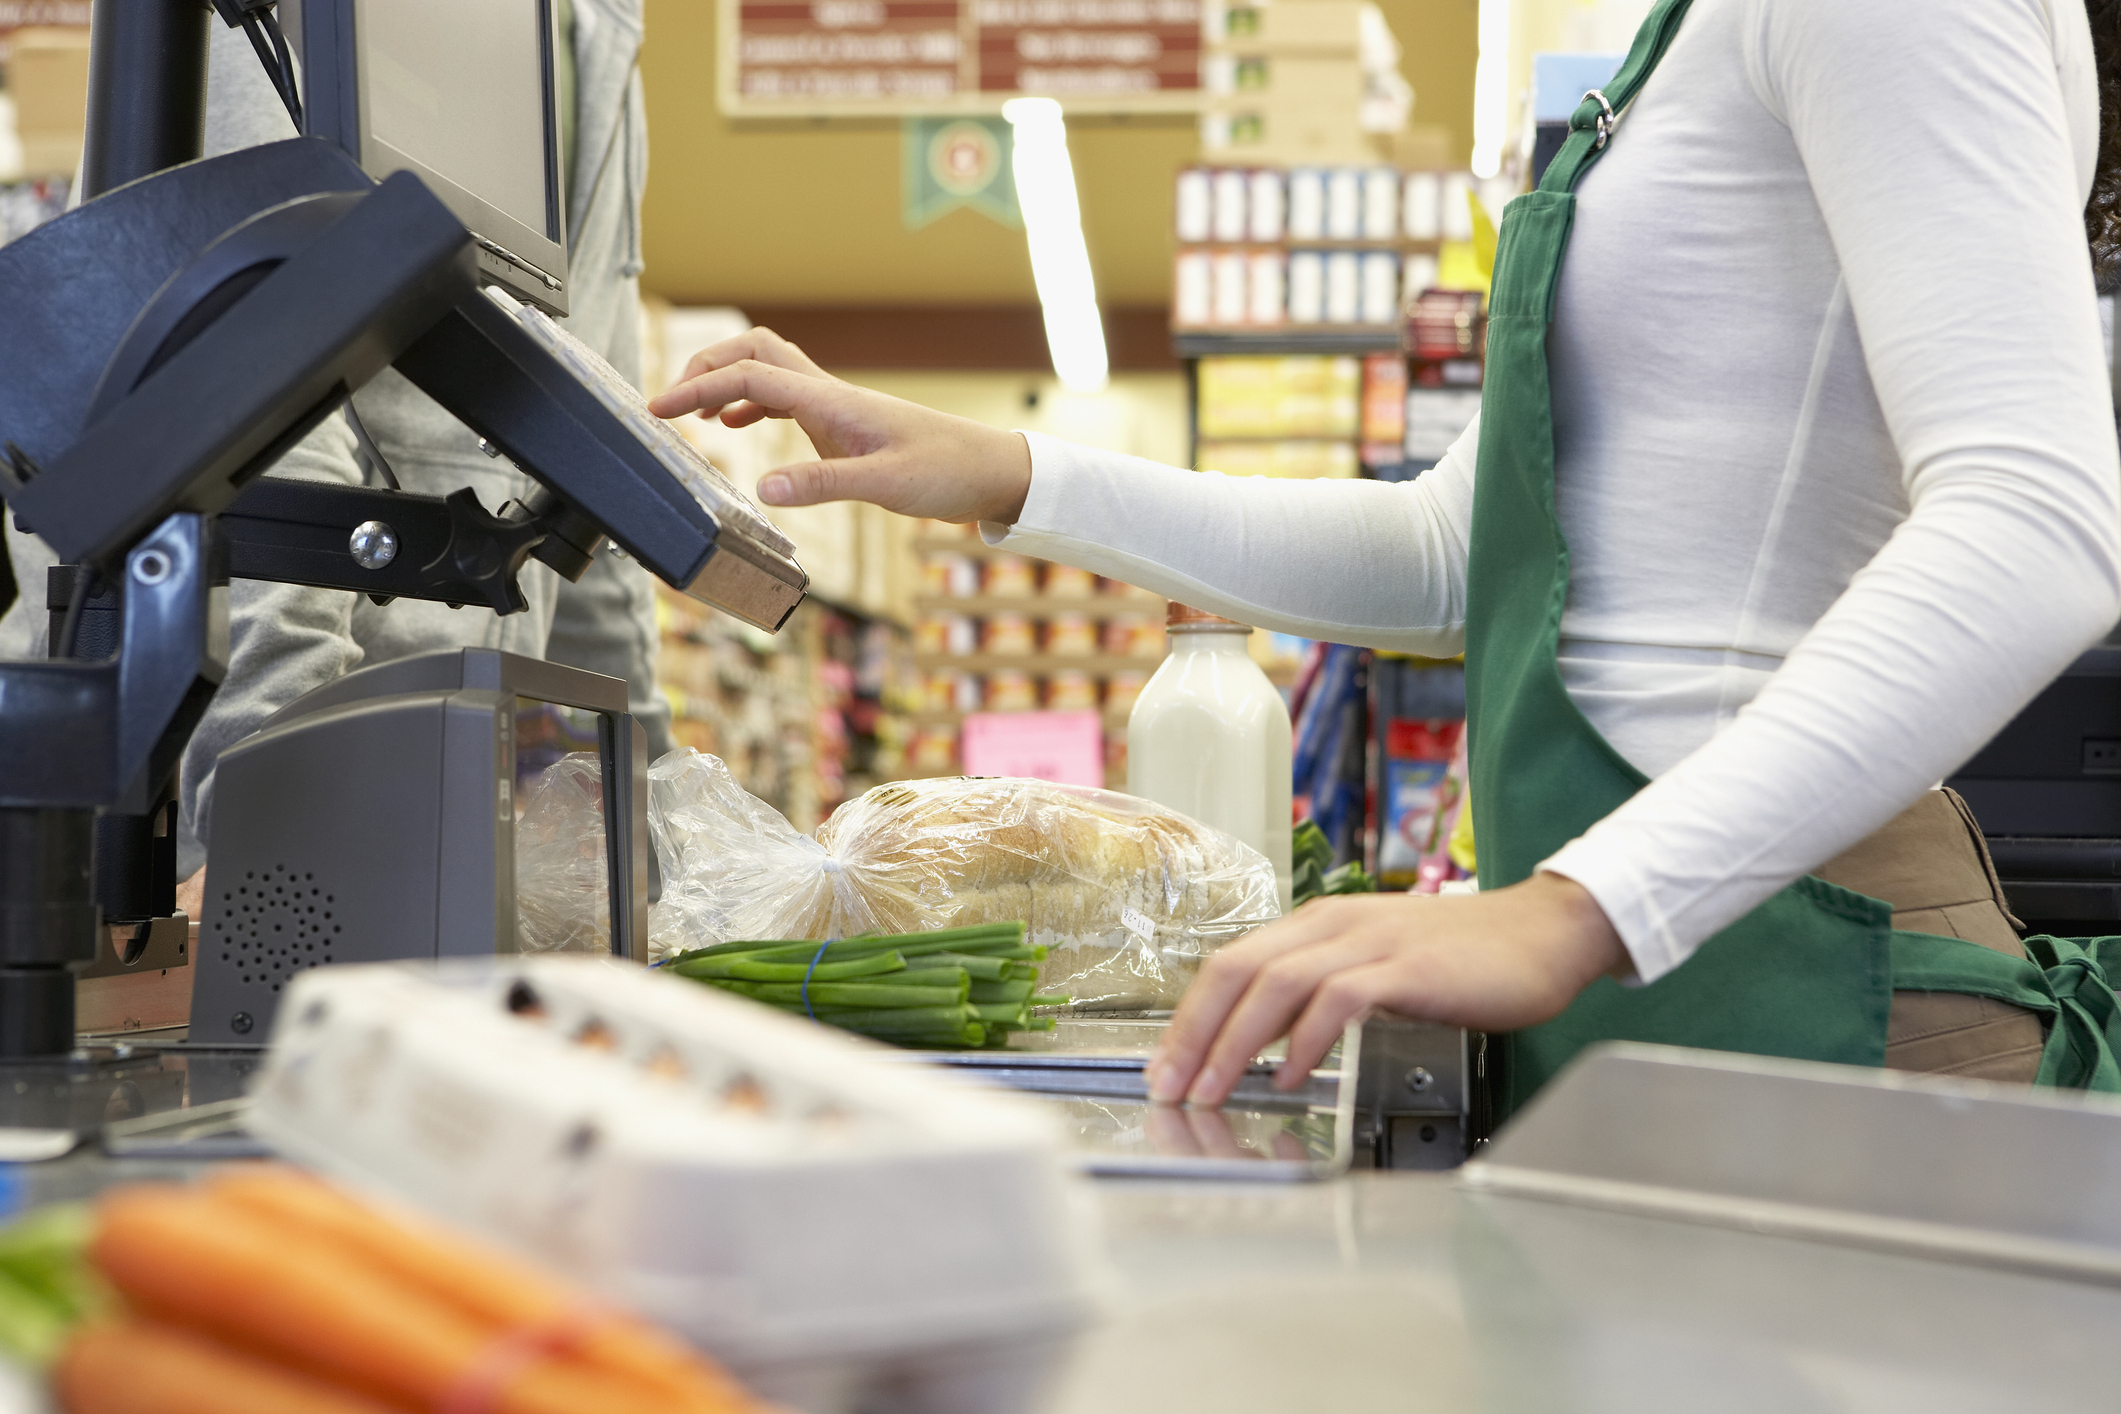 Cashier swiping groceries through a POS system